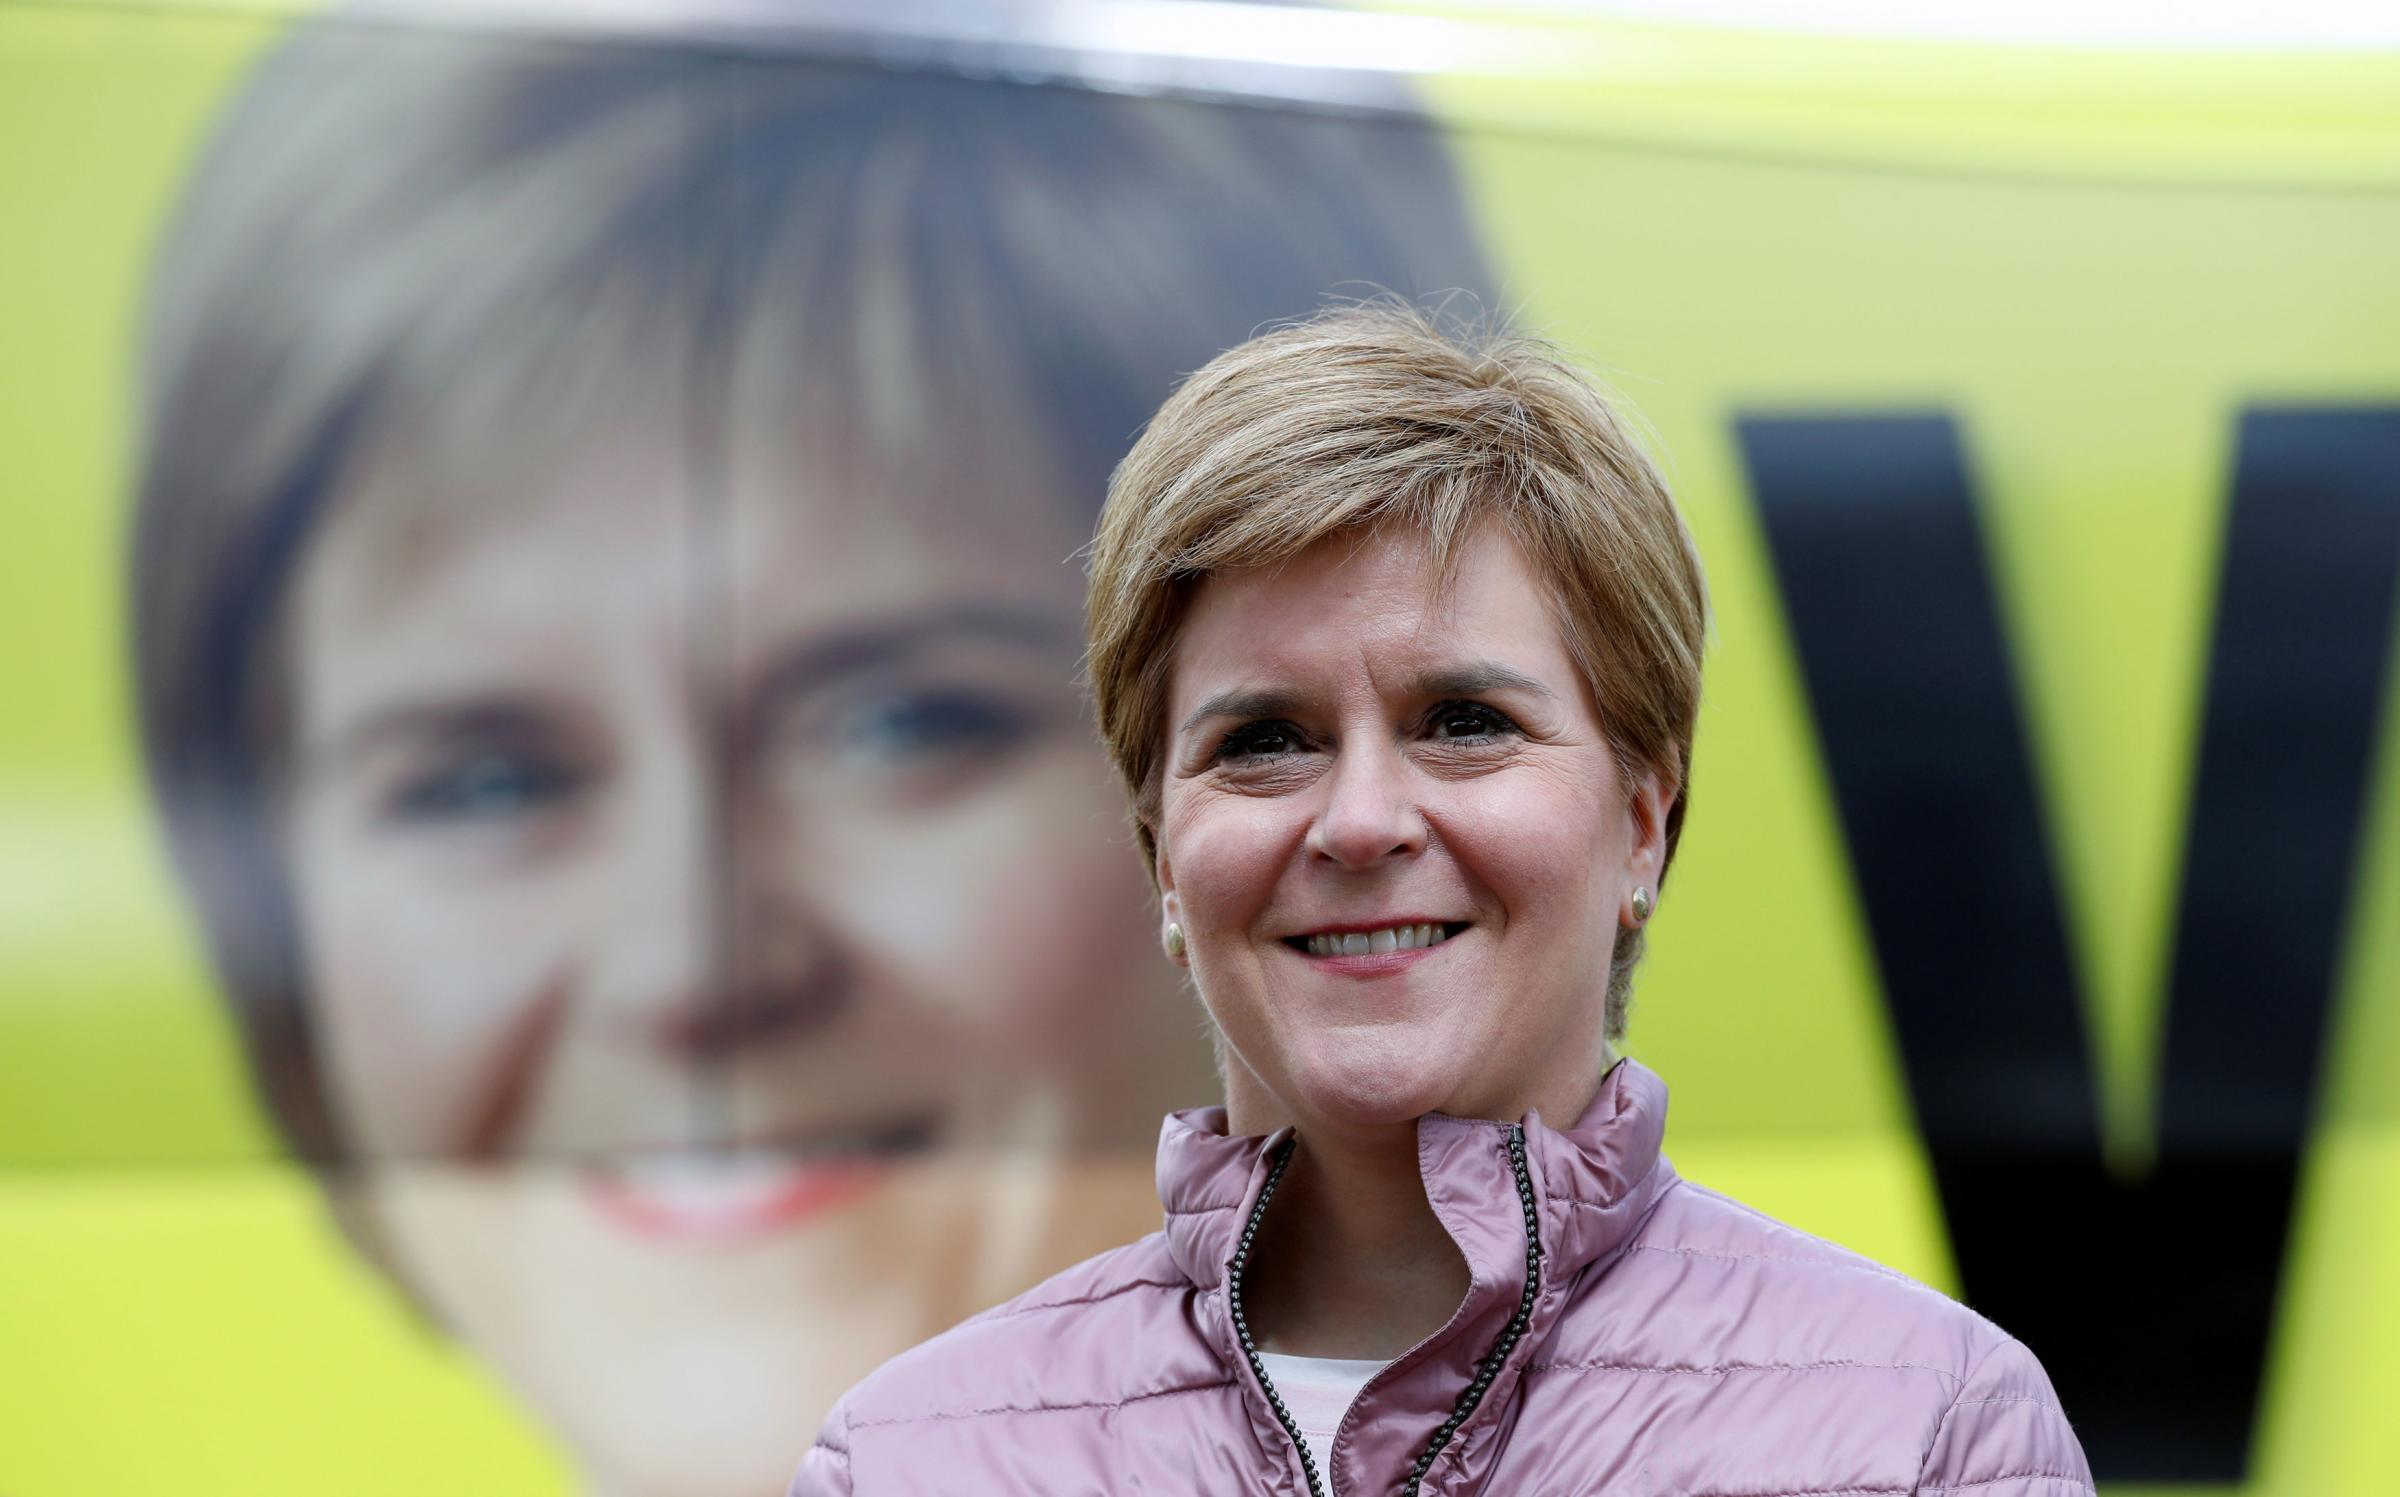 Nicola Sturgeon hailed for no-nonsense response to right-wing ambush - national scot